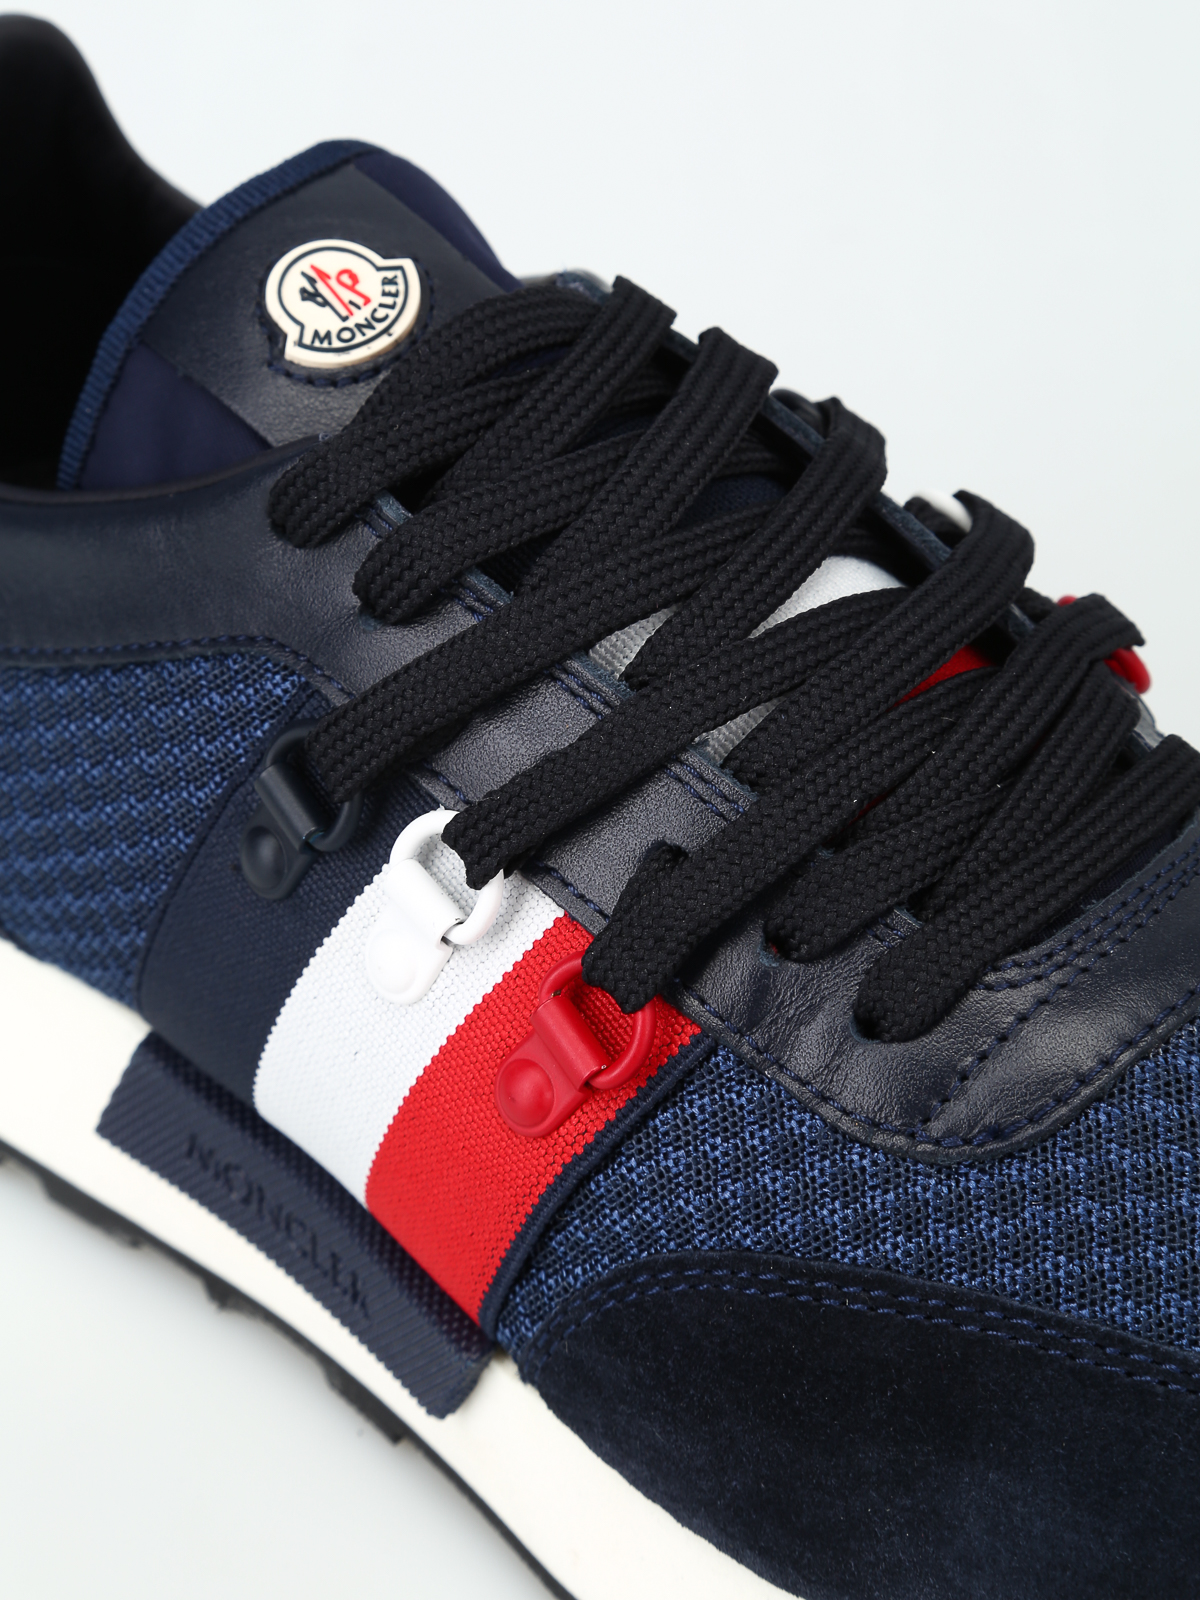 bf06e388f Moncler - New Horace white sneakers - trainers - D2 09A 1028700 ...